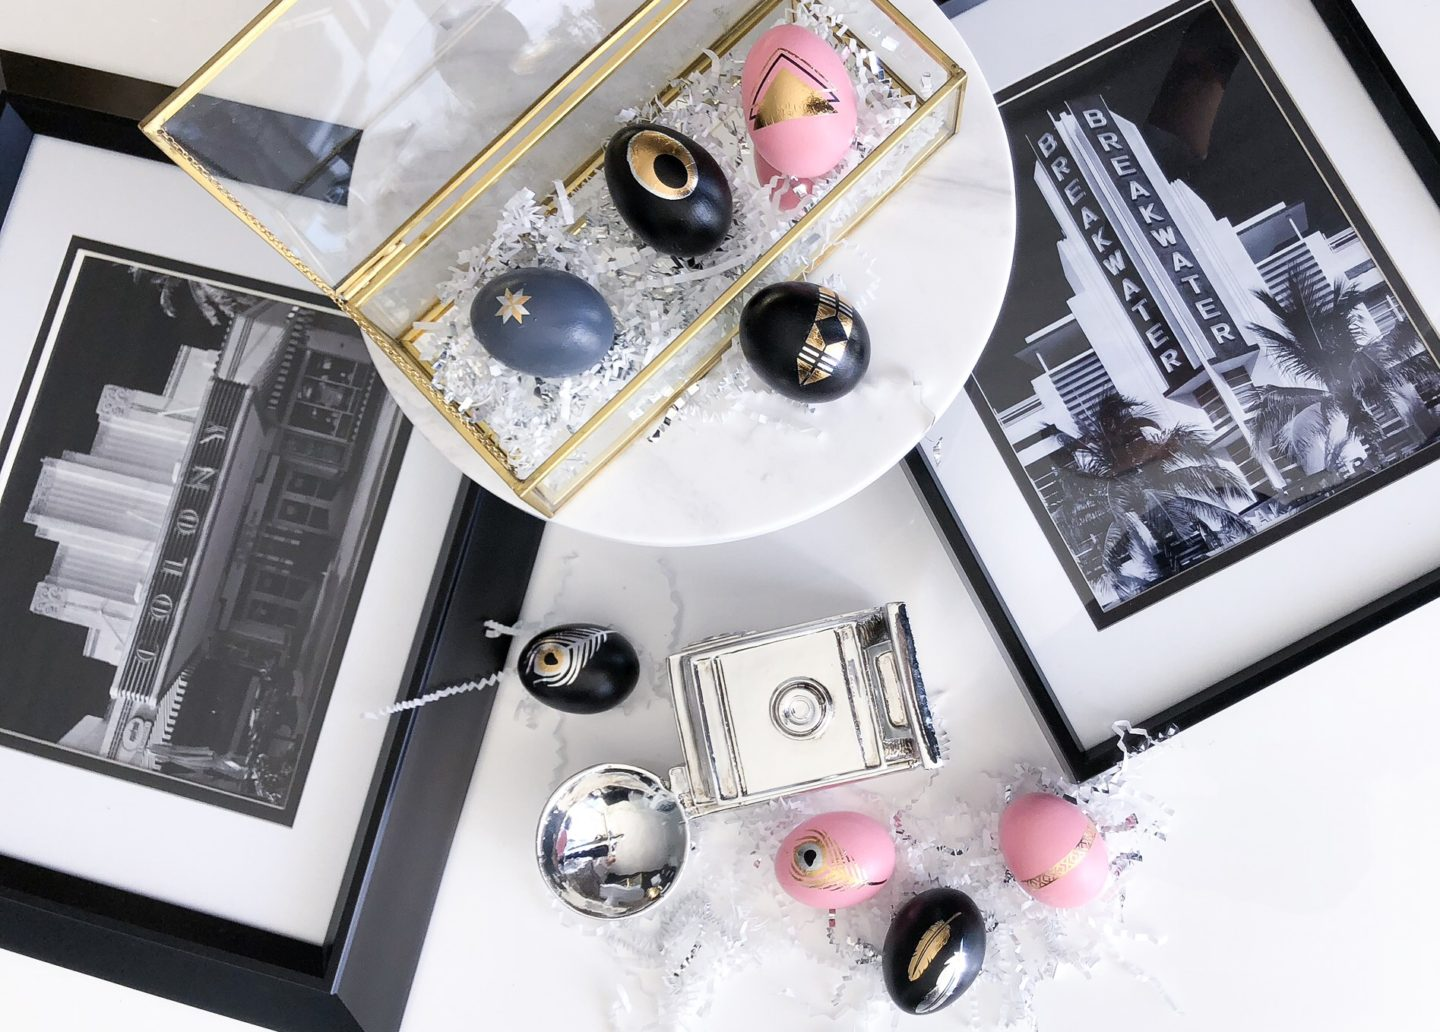 Miami Inspired Art Deco Easter Eggs with a Dash of History